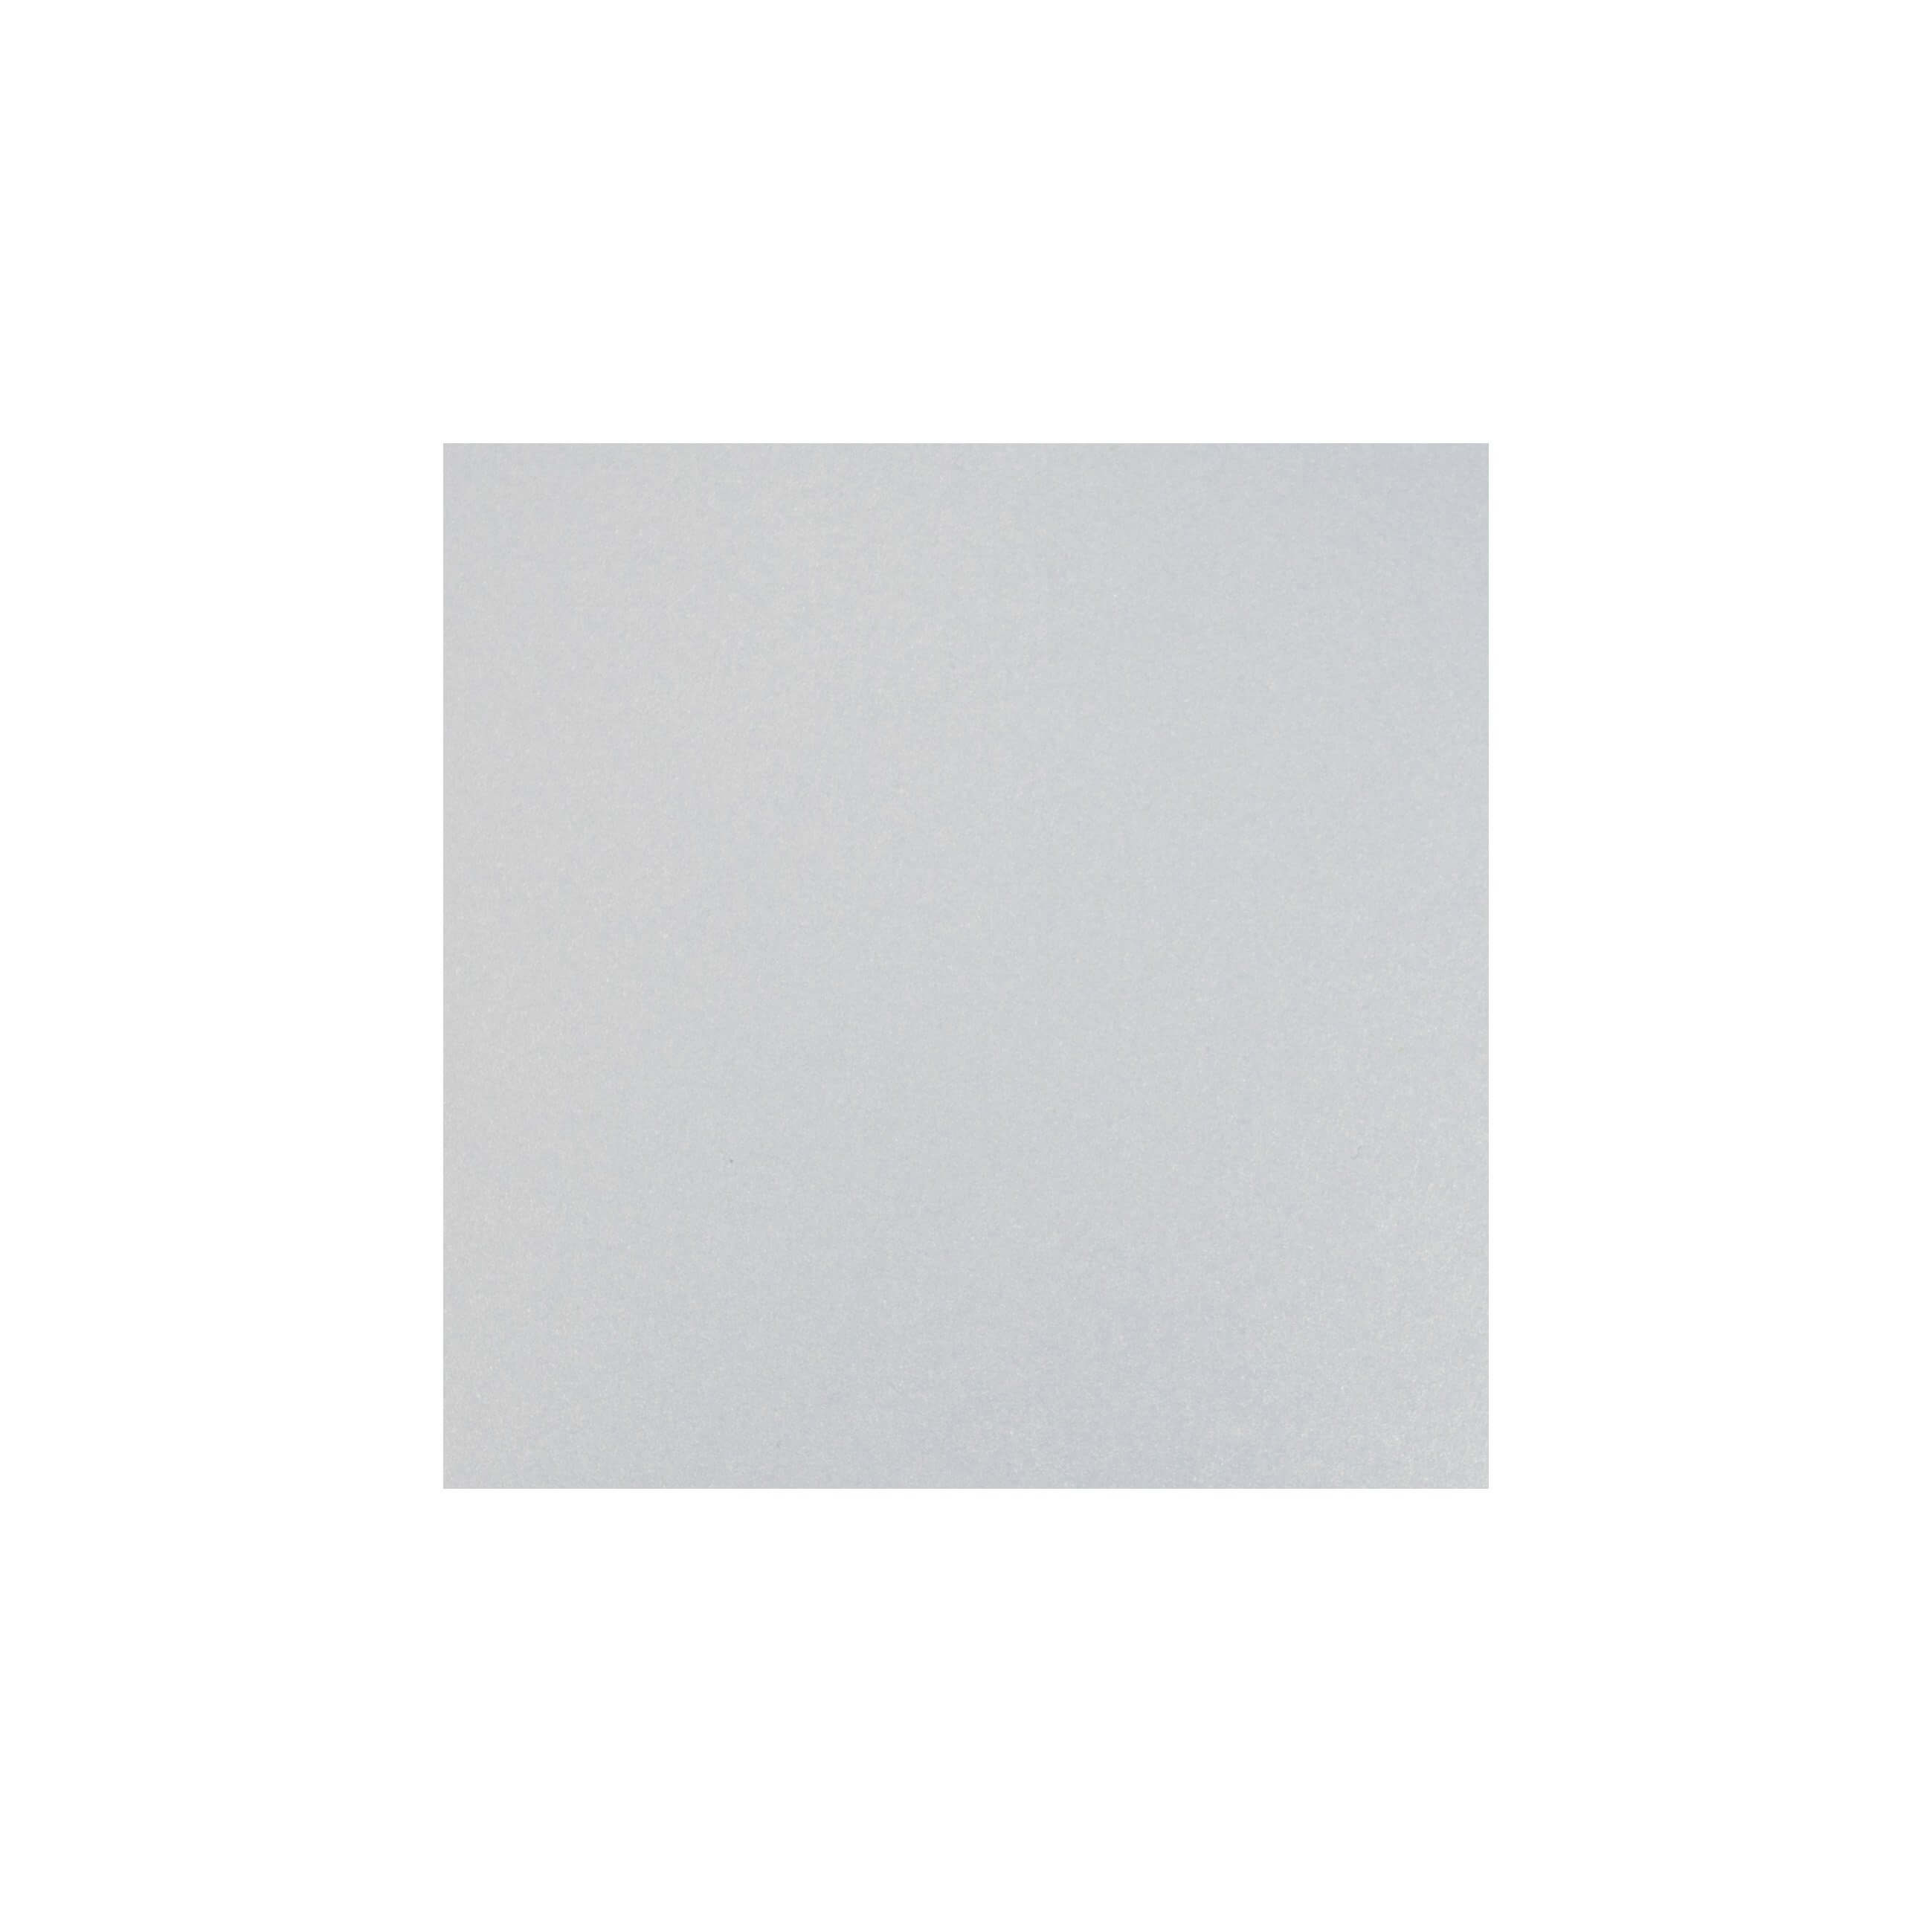 Cardstock 119mm Square - White Lustre